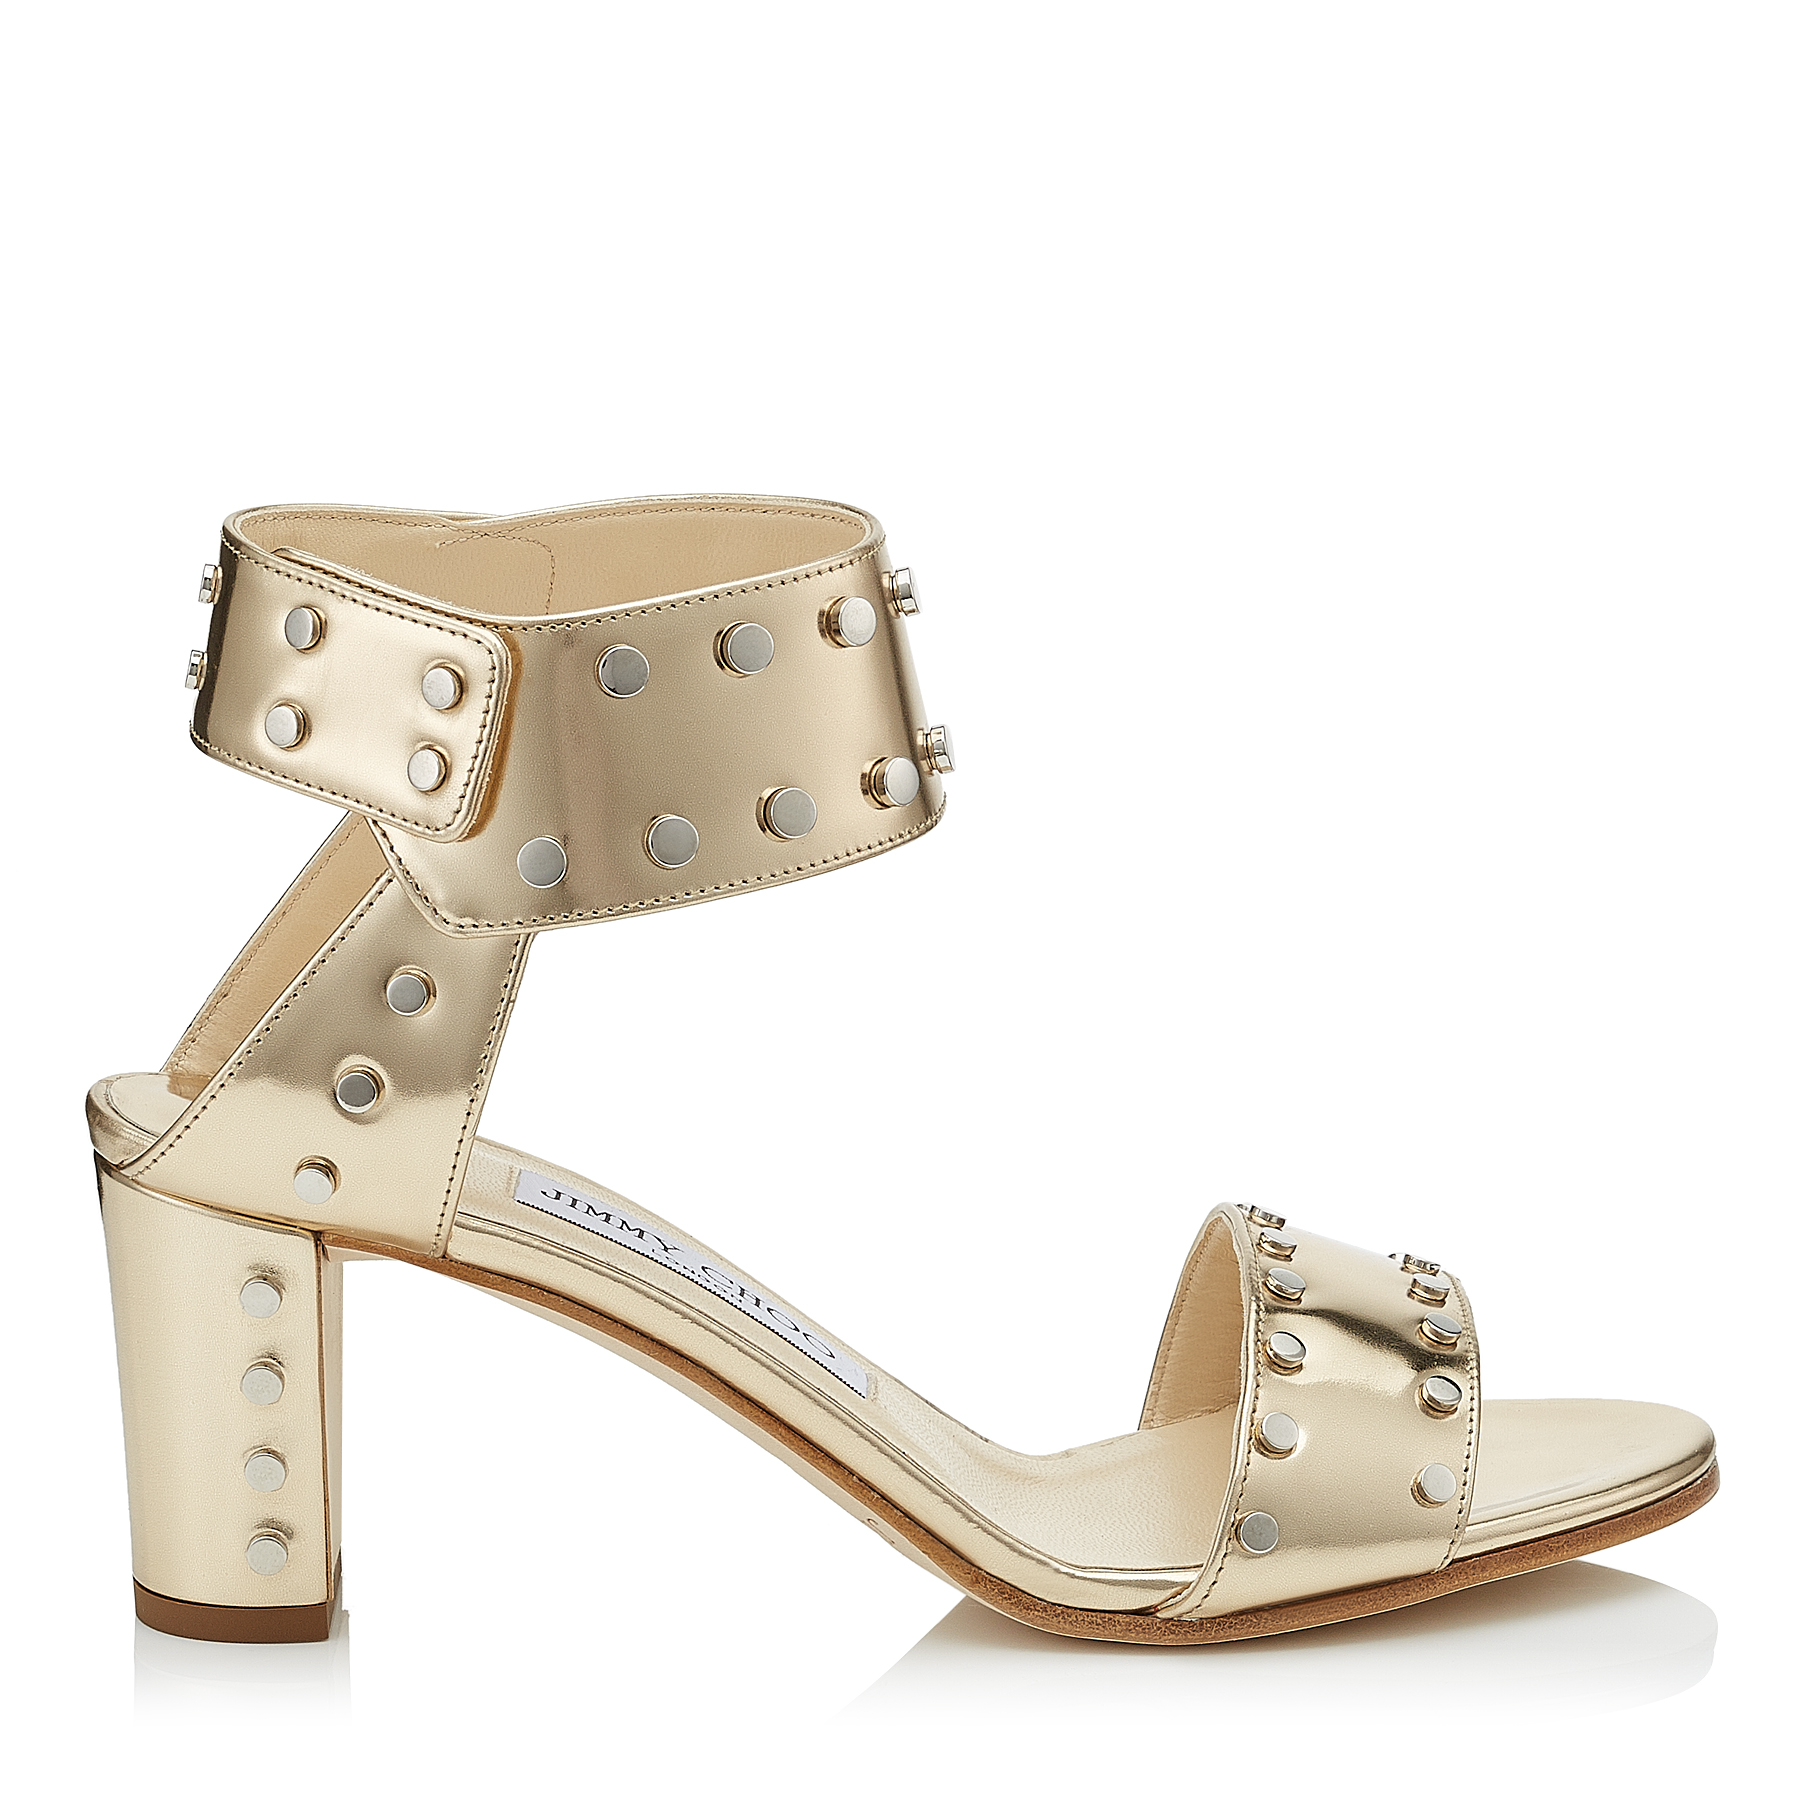 VETO 65 Dore Mirror Leather Sandals with Silver Studs